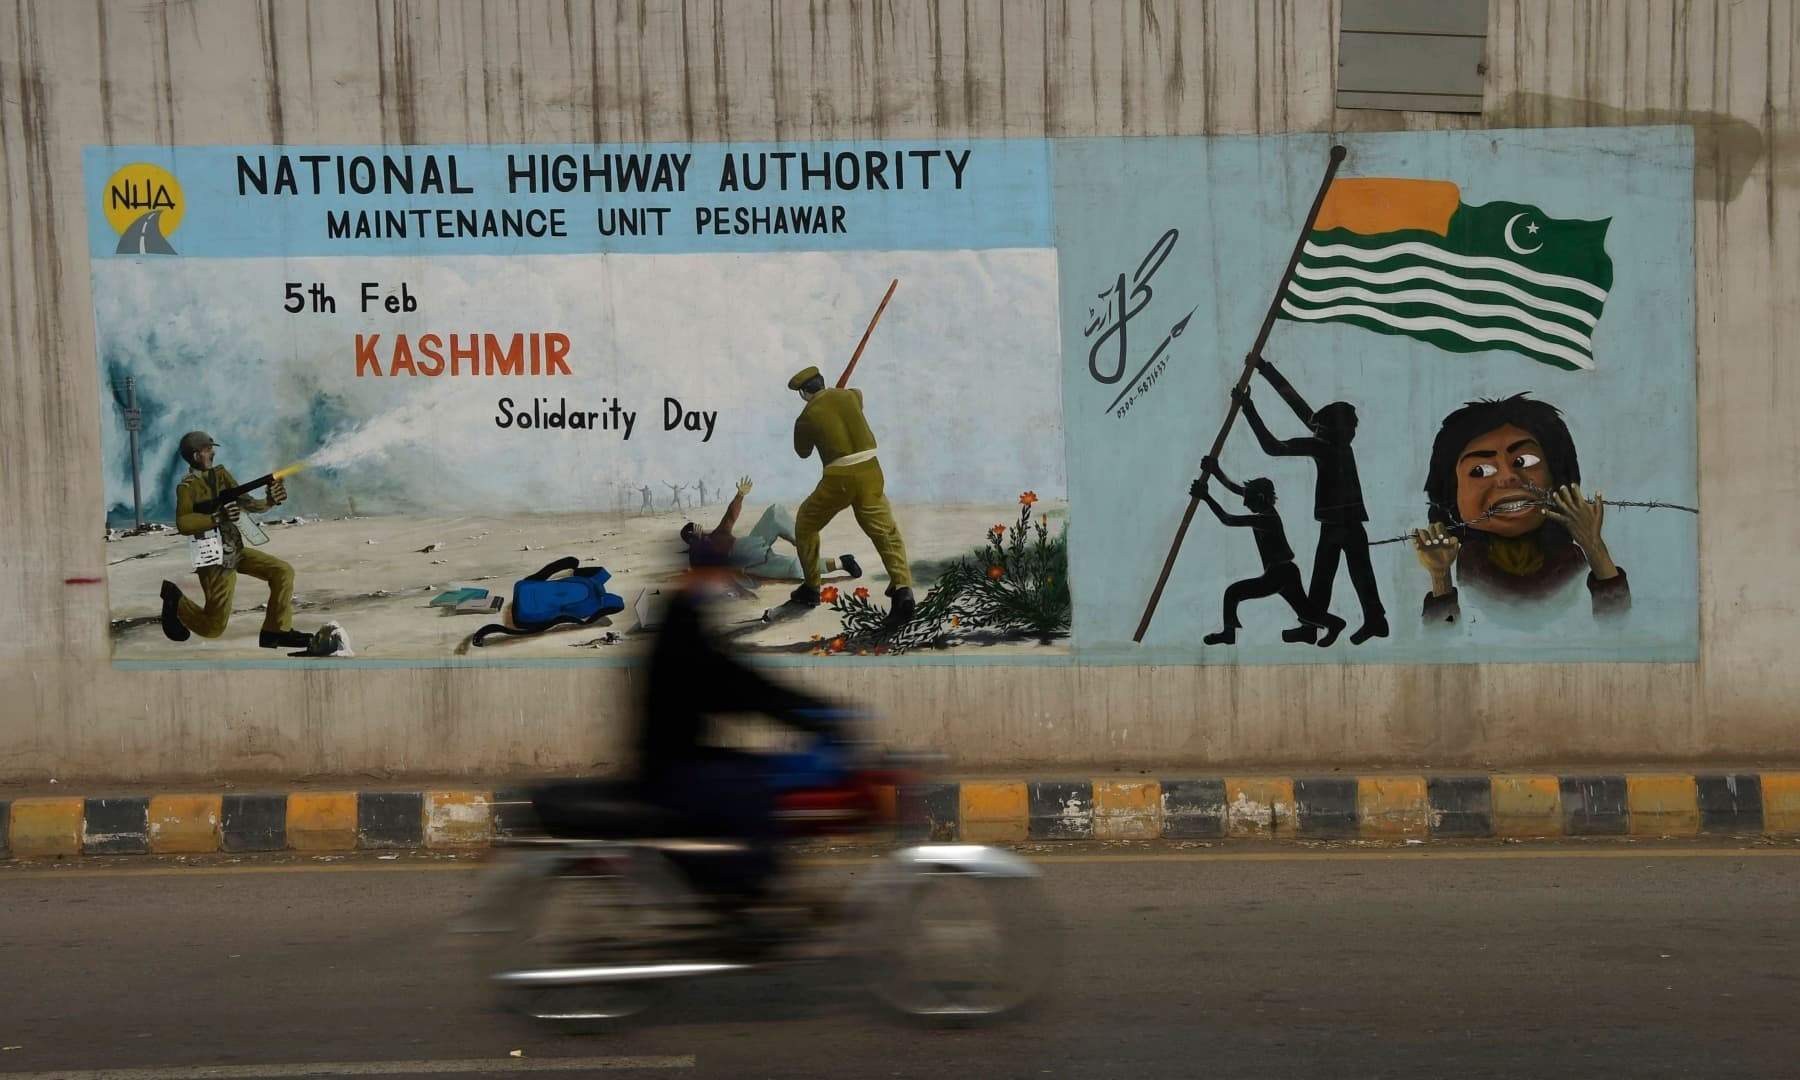 A commuter rides past a painting on a flyover depicting Kashmir Solidarity Day in Peshawar on February 5. — AFP